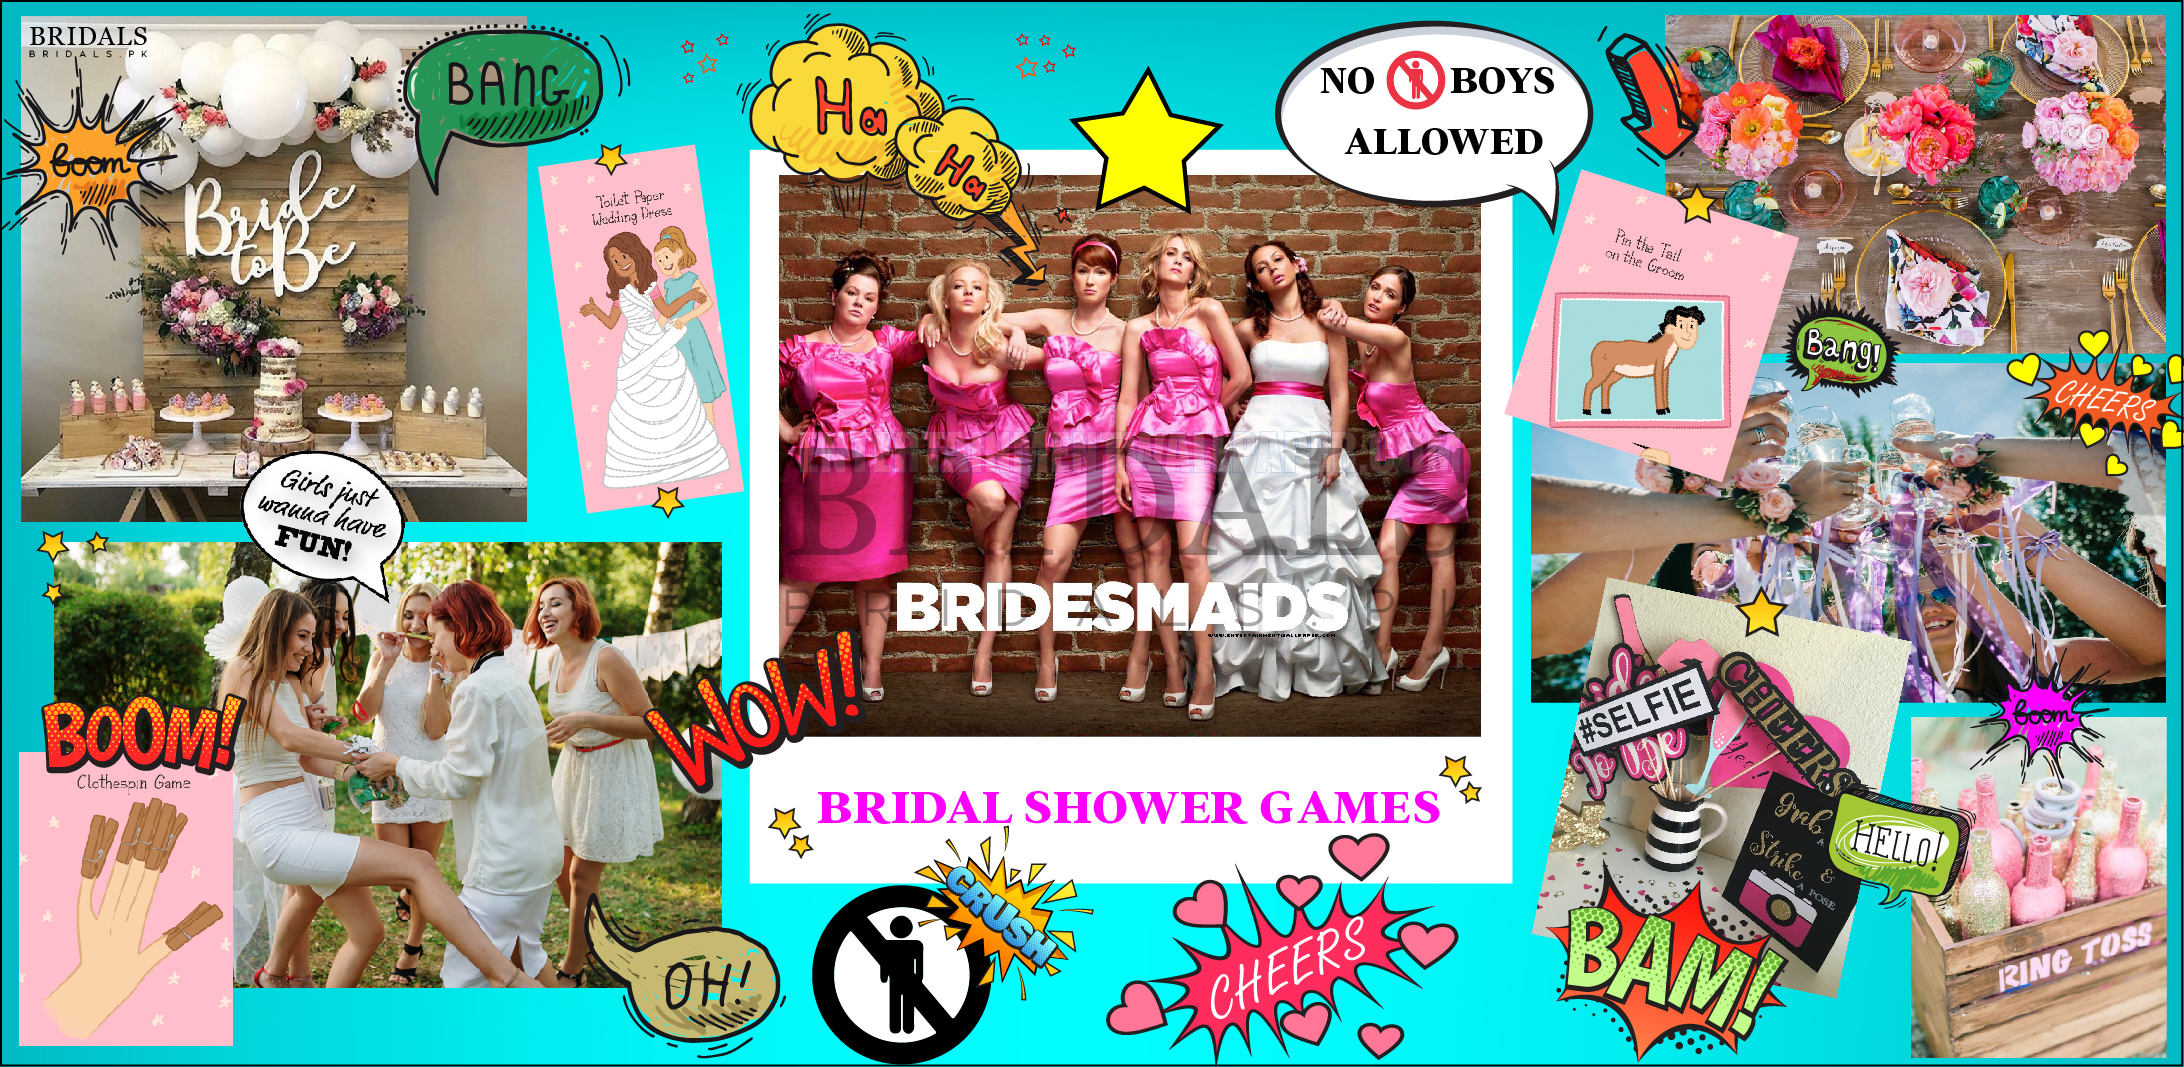 12 Bridal Shower Games to Get Your Bridal Party All Pumped Up!